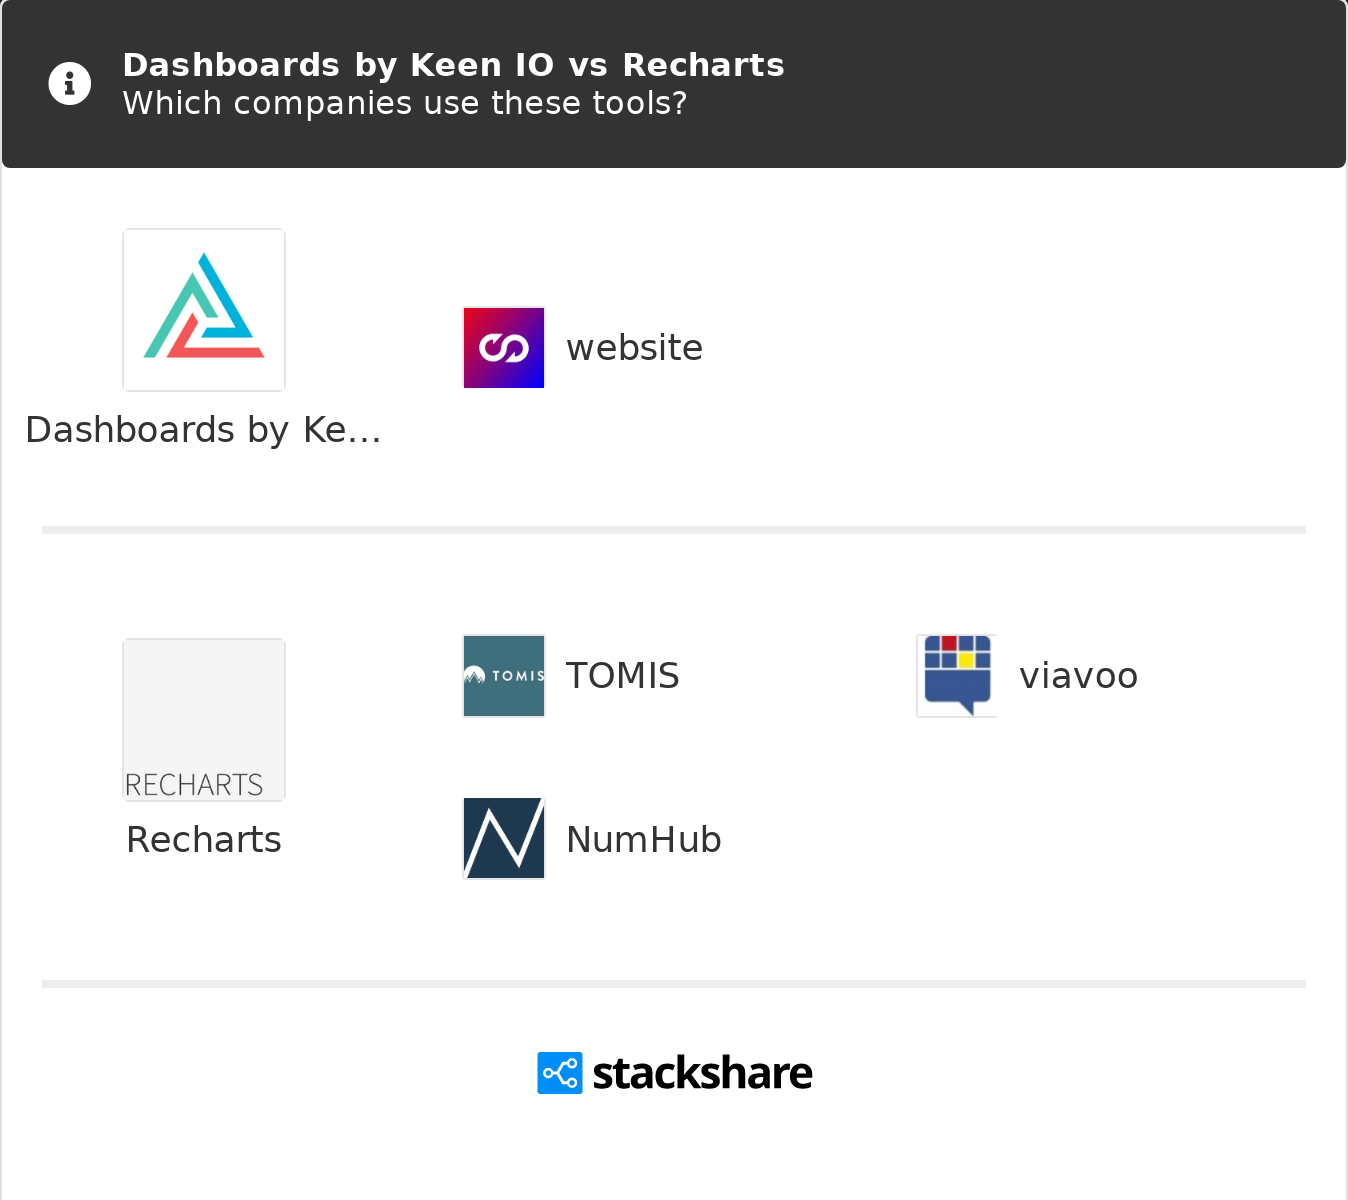 Dashboards by Keen IO vs Recharts   What are the differences?